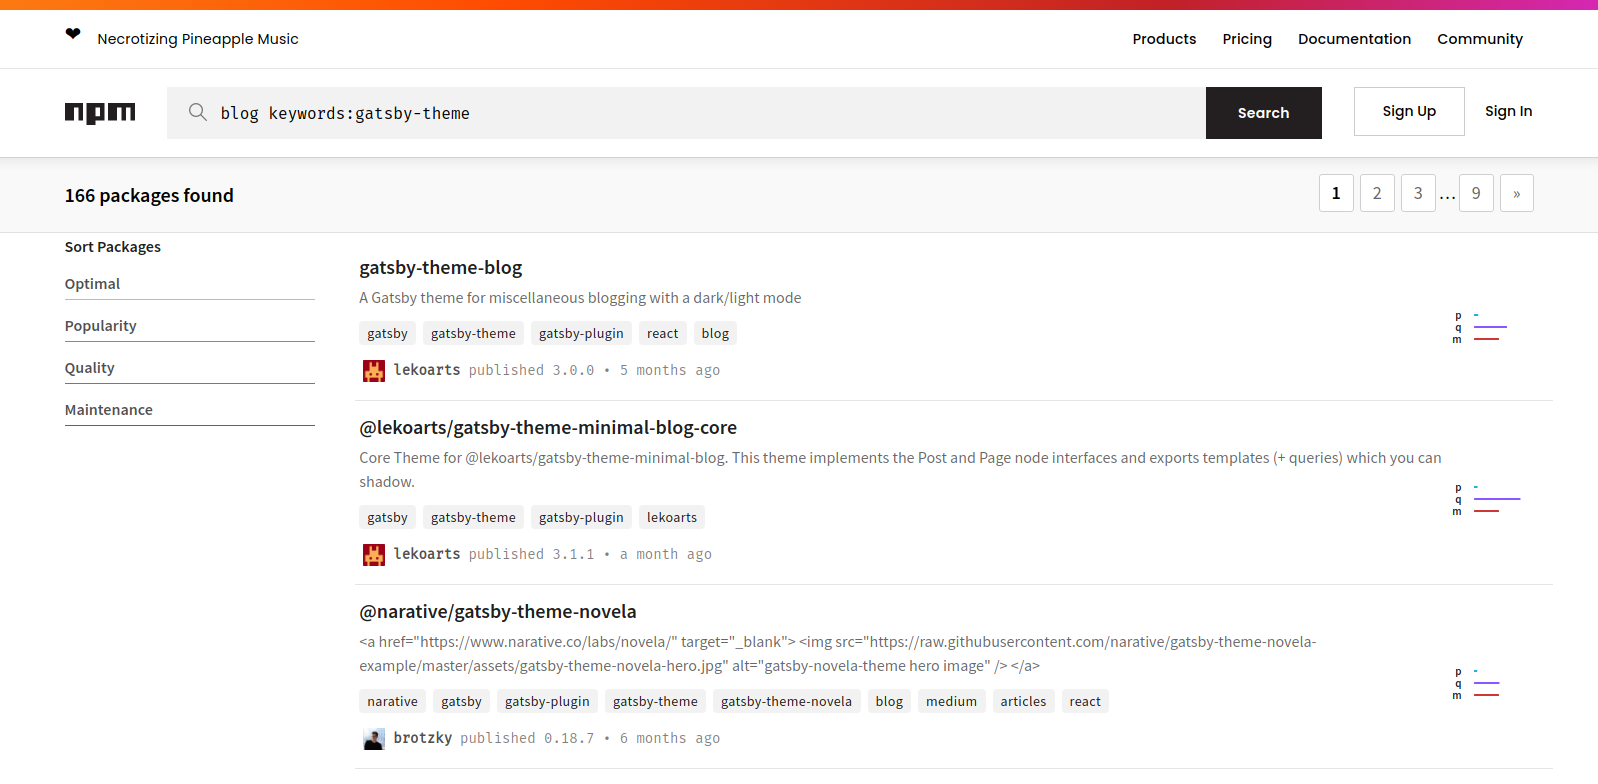 """npm results page for the """"blog keywords:gatsby-theme"""" search. """"gatsby-theme-blog"""" is the first package."""